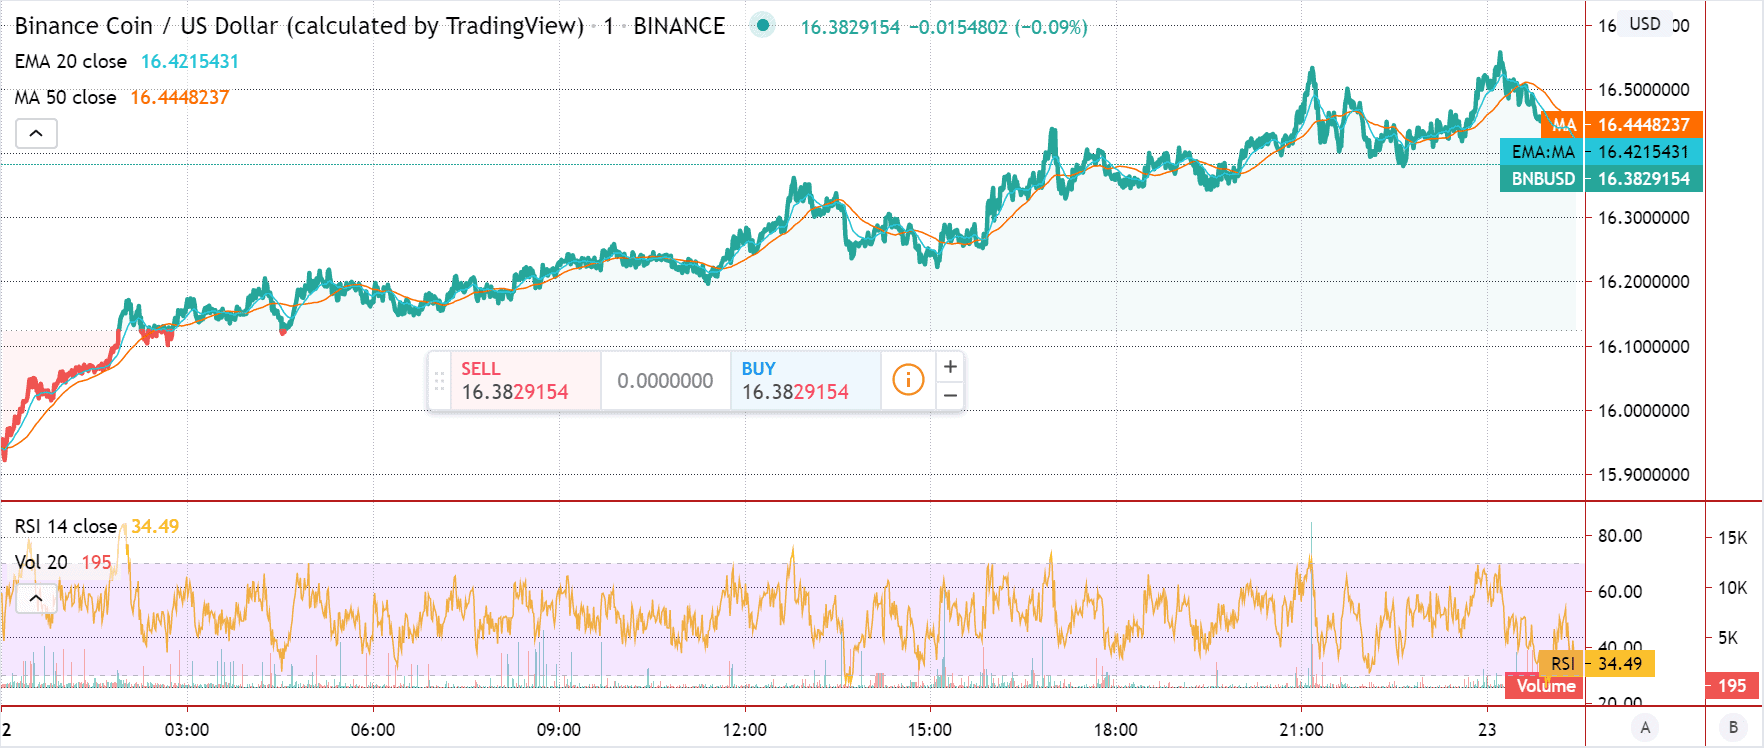 Binance Coin price chart 2 - 22 June